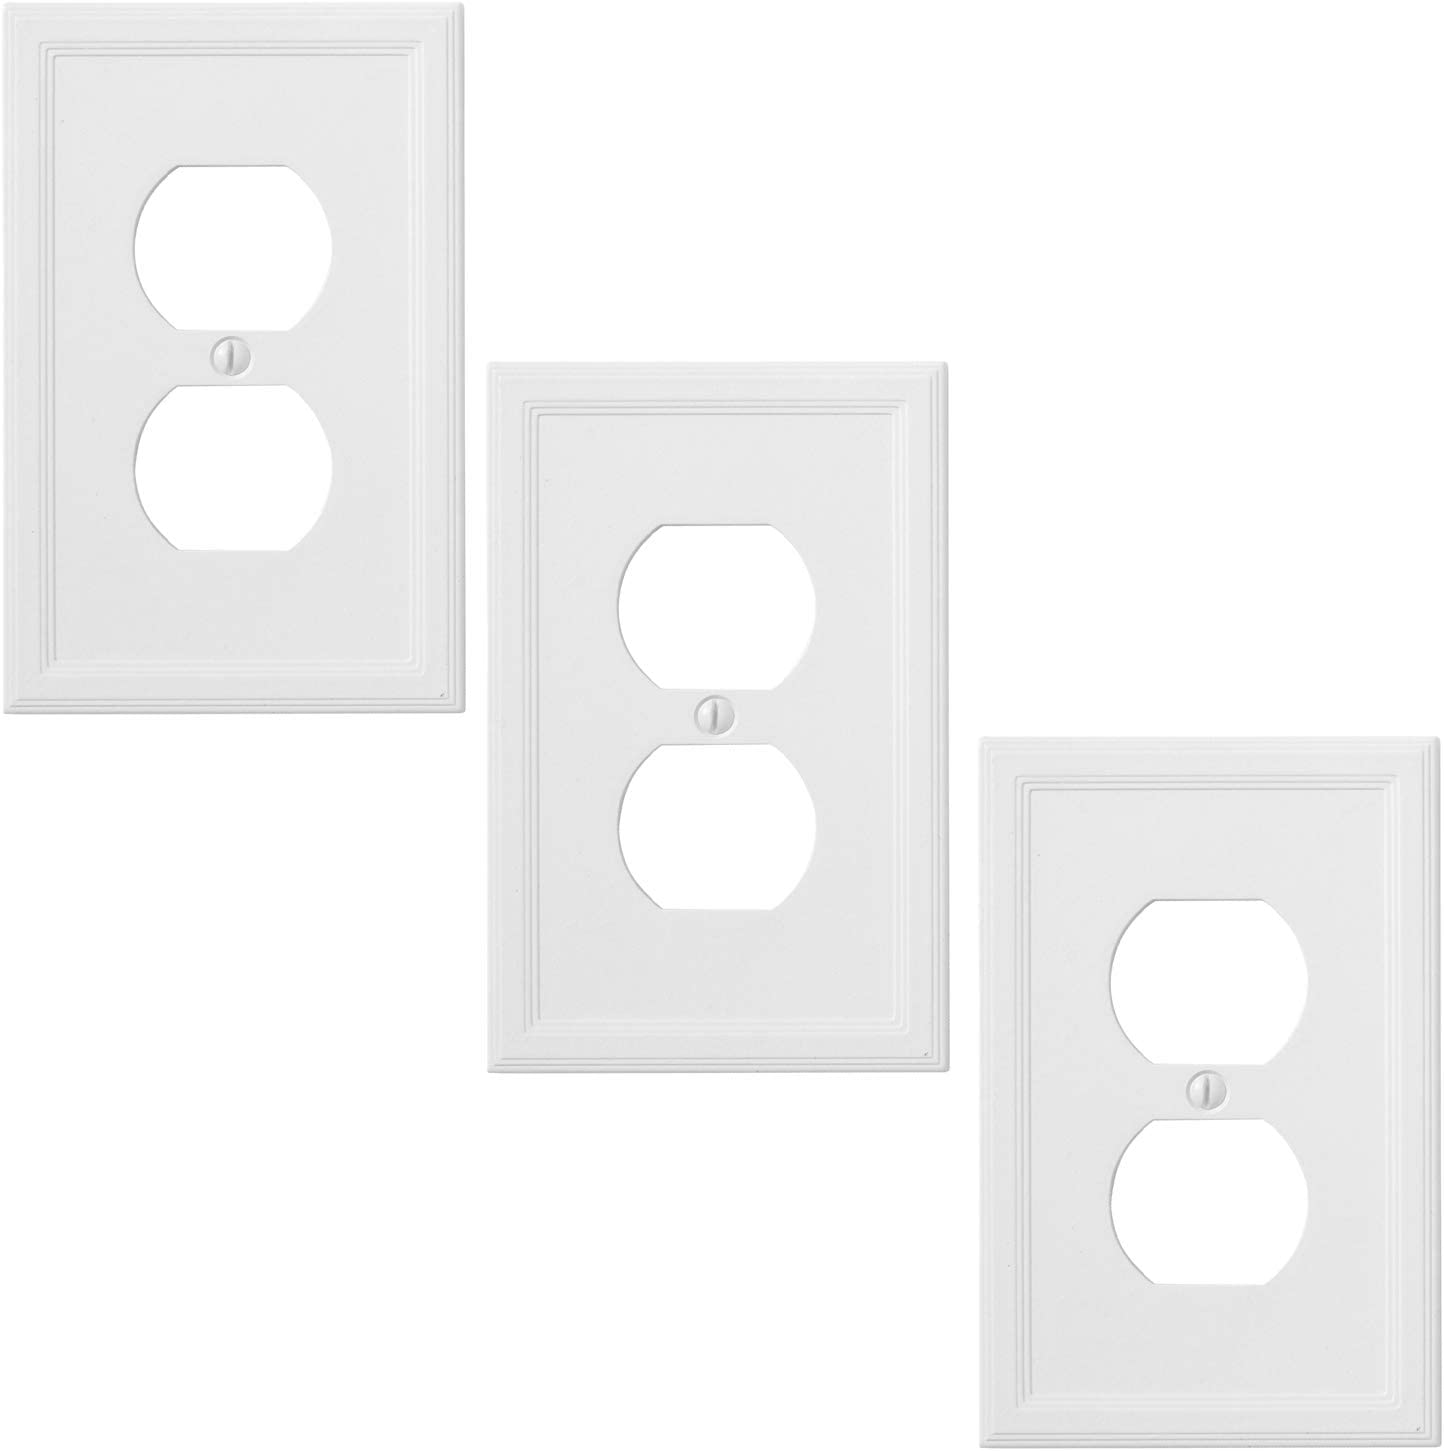 Insulated Single Duplex 3 Pack - White Outlet Cover Decorative Light Switch Cover Wall Plate